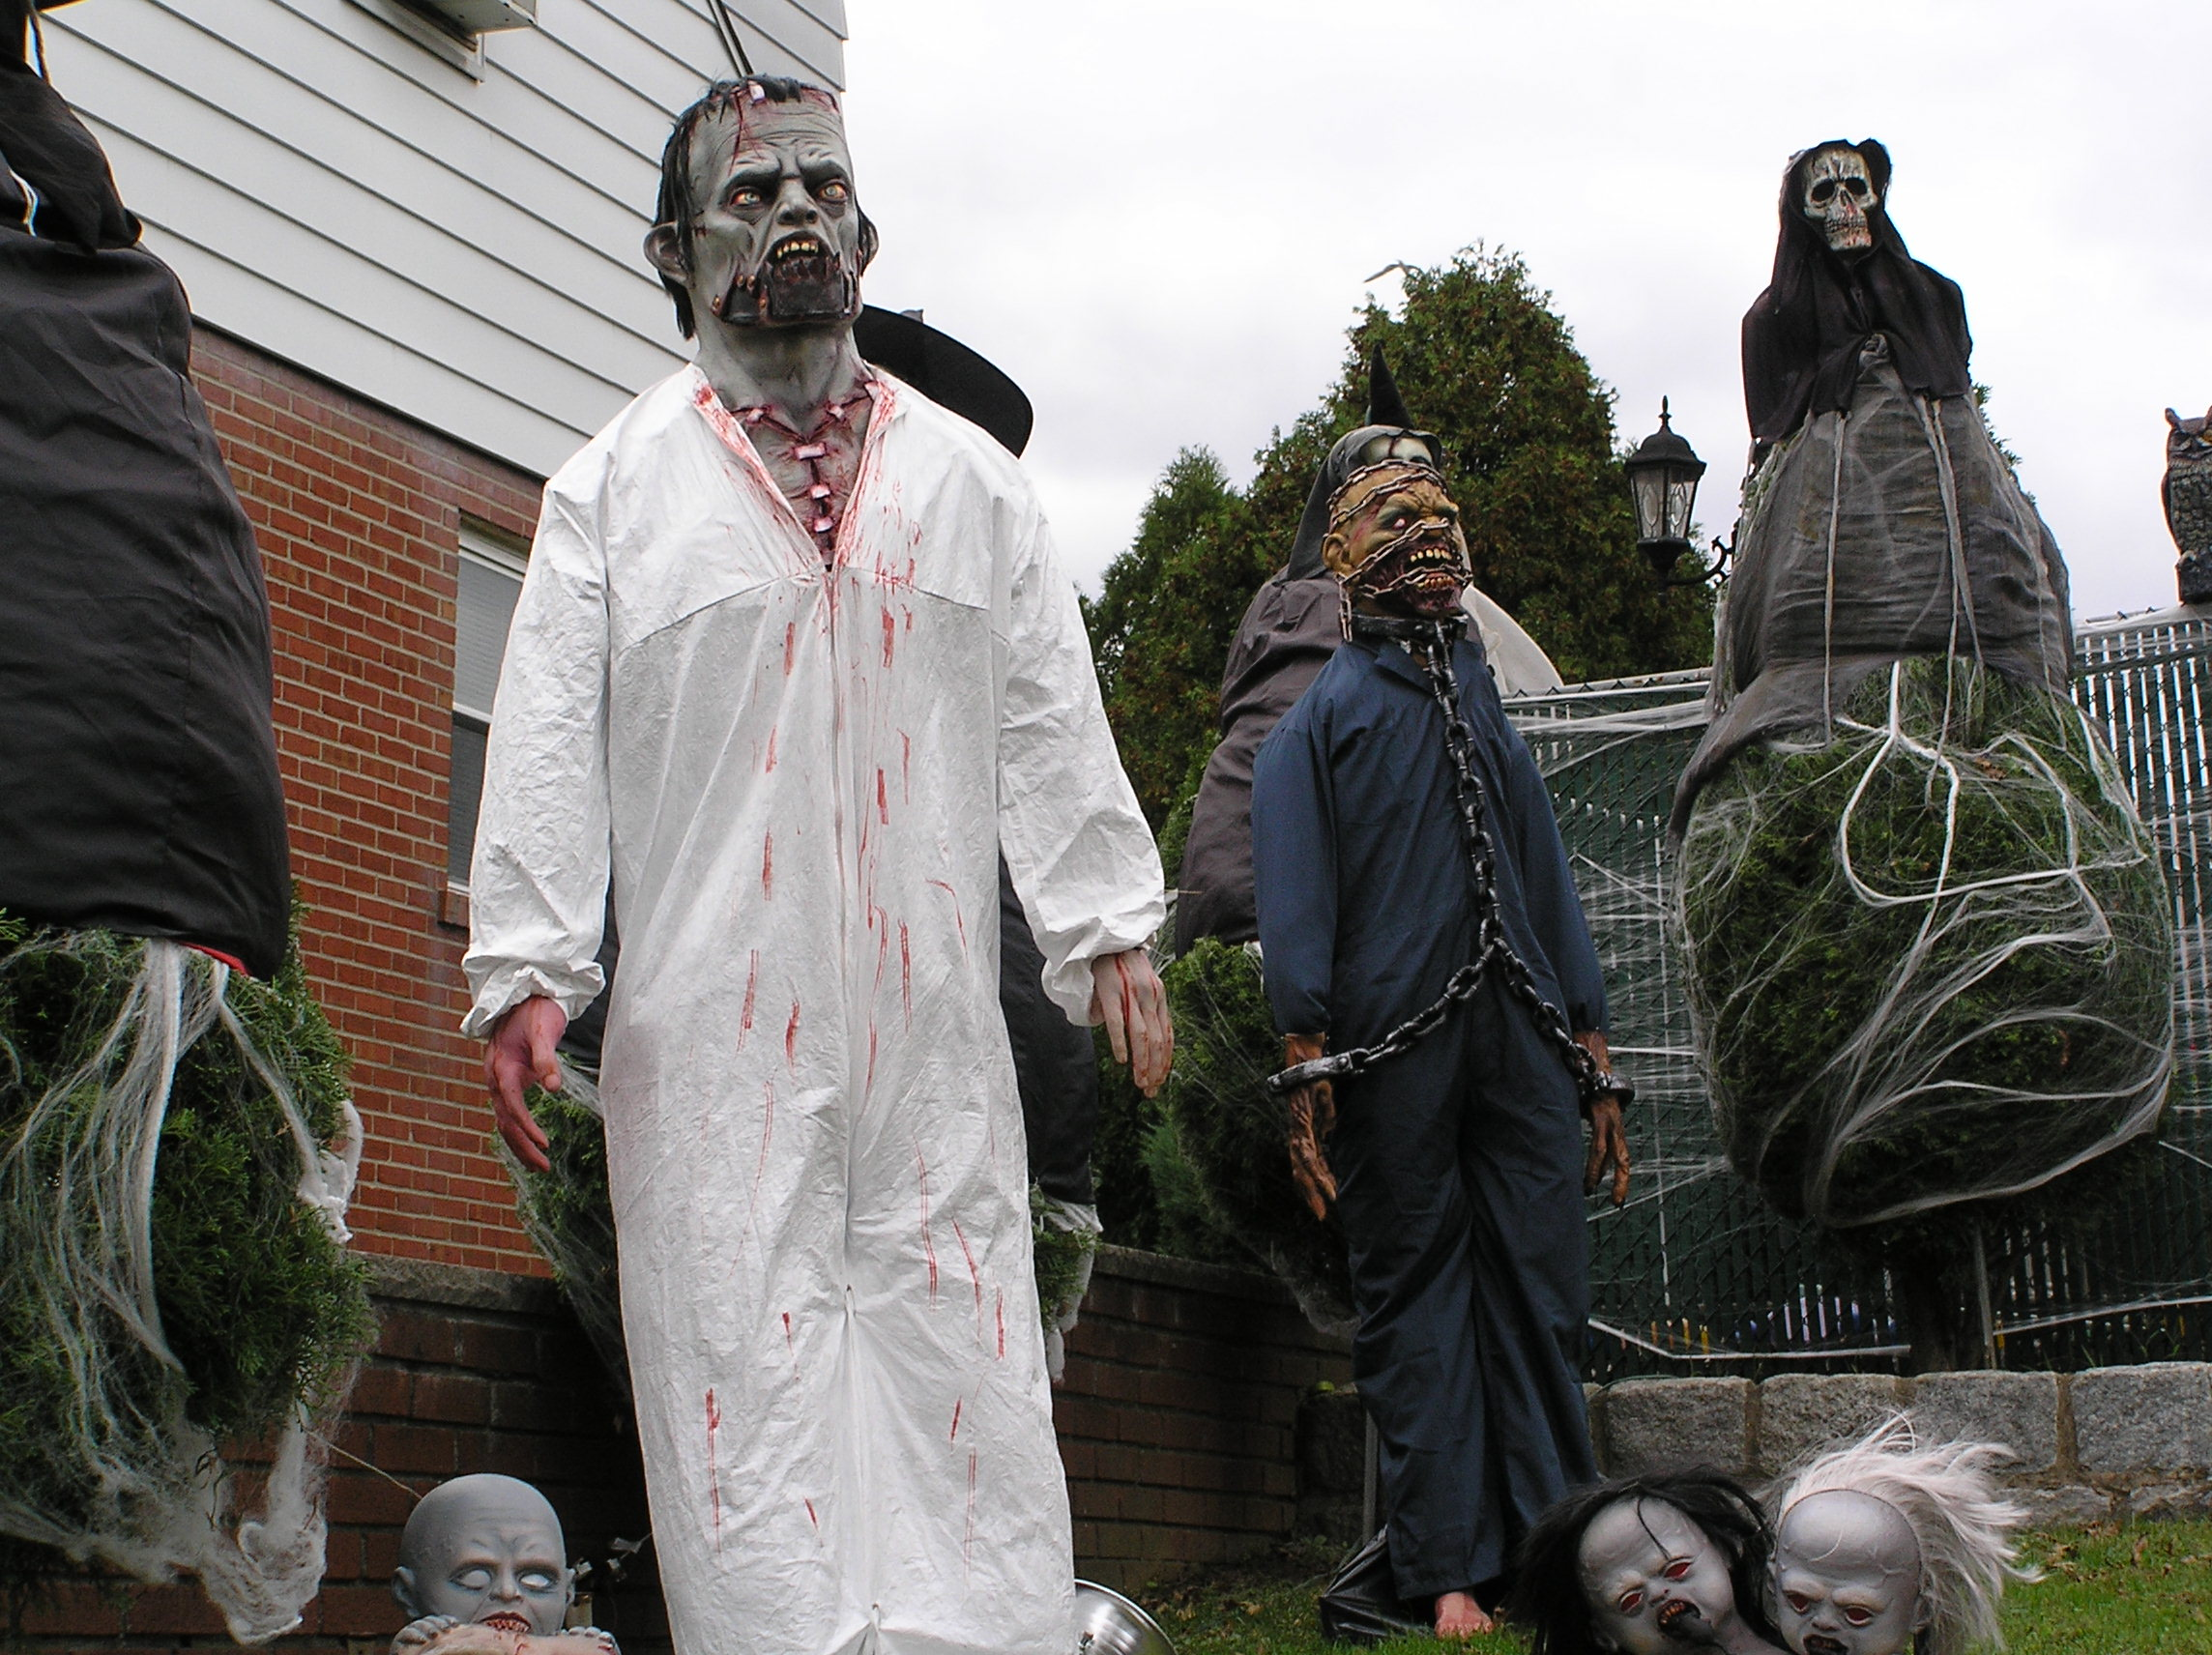 File:Scary Halloween Costumes 2011.JPG - Wikimedia Commons